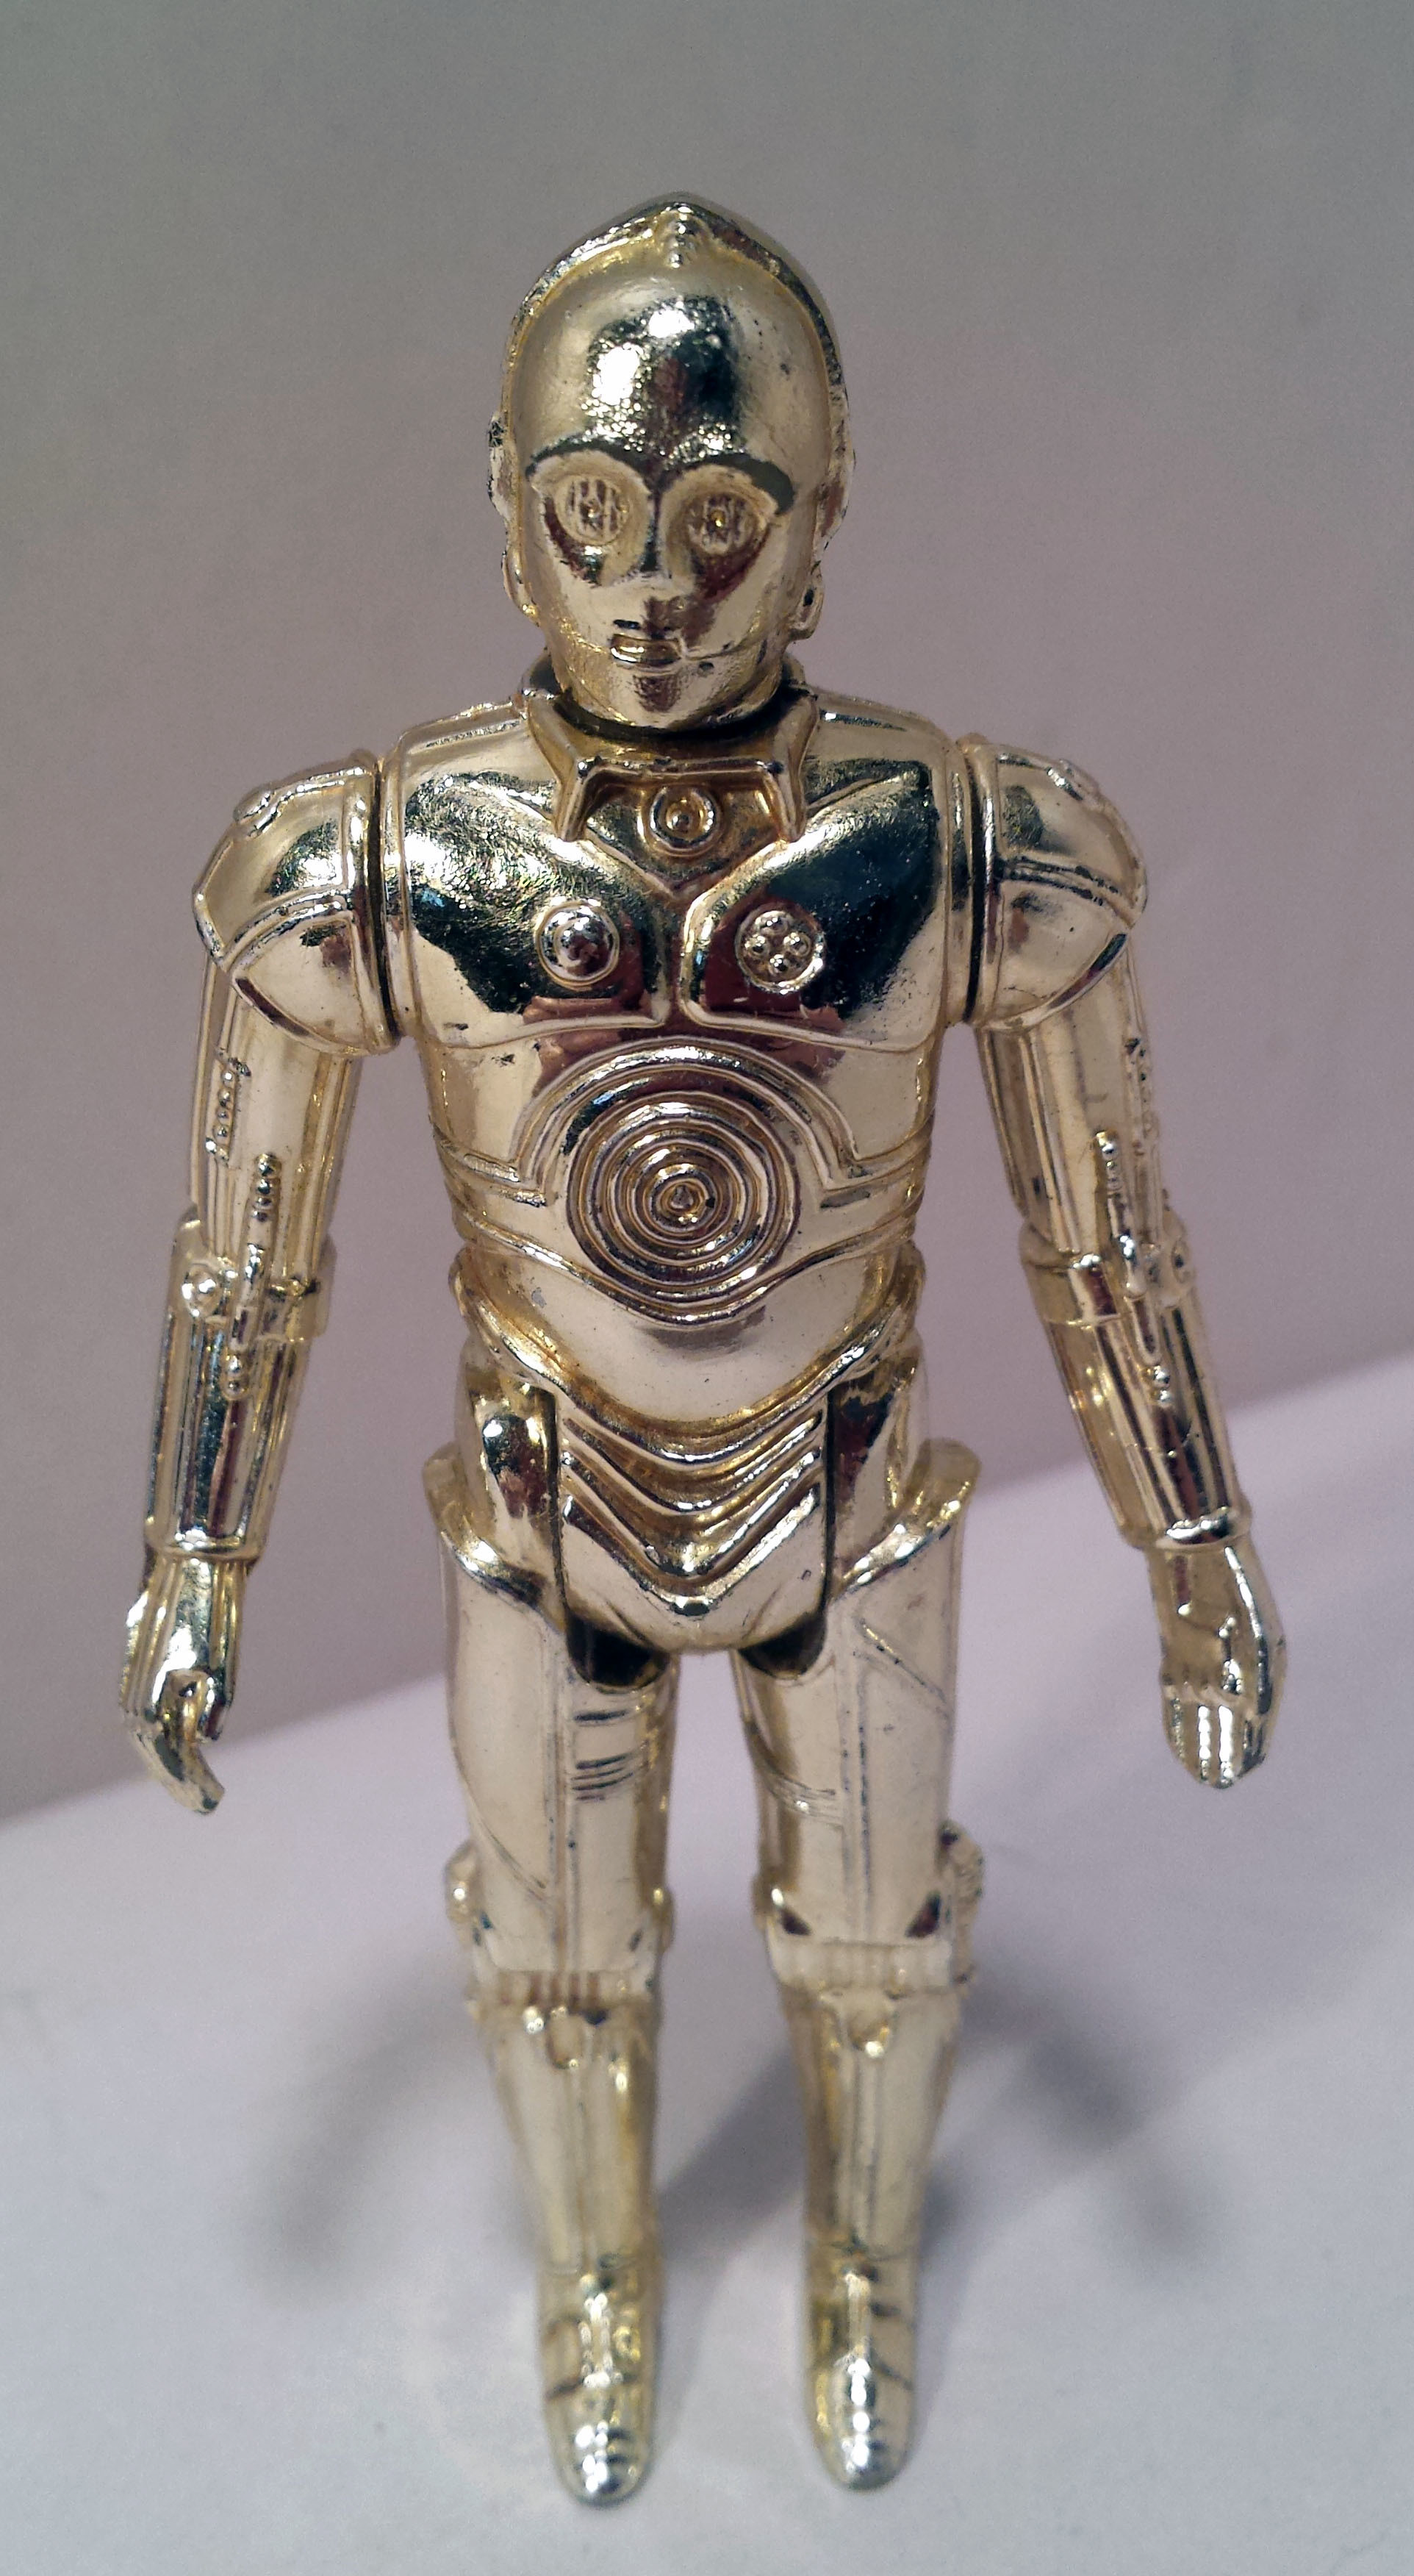 Vintage 1977 Star Wars C-3PO C3PO Hong Kong Kenner Action Figure Loose